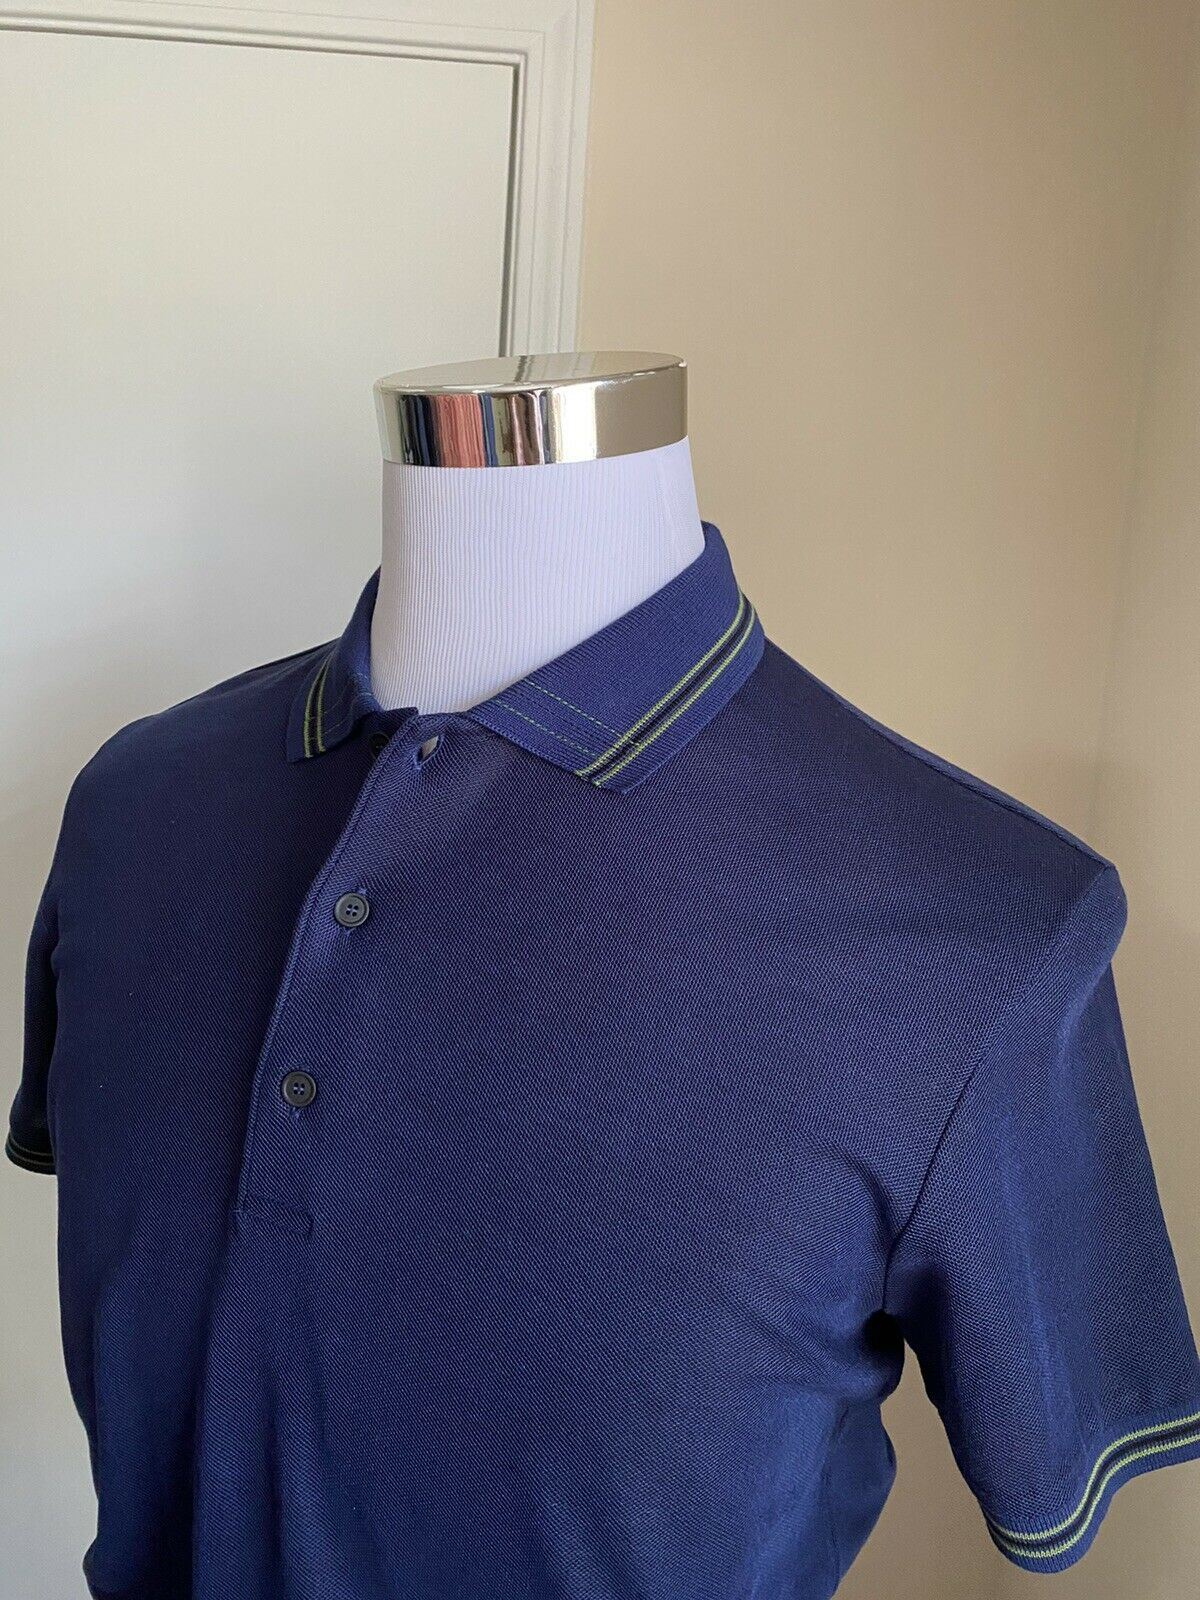 NWT $390 Bottega Veneta Mens Polo Shirt Blue XS US ( 44 Eu ) Italy